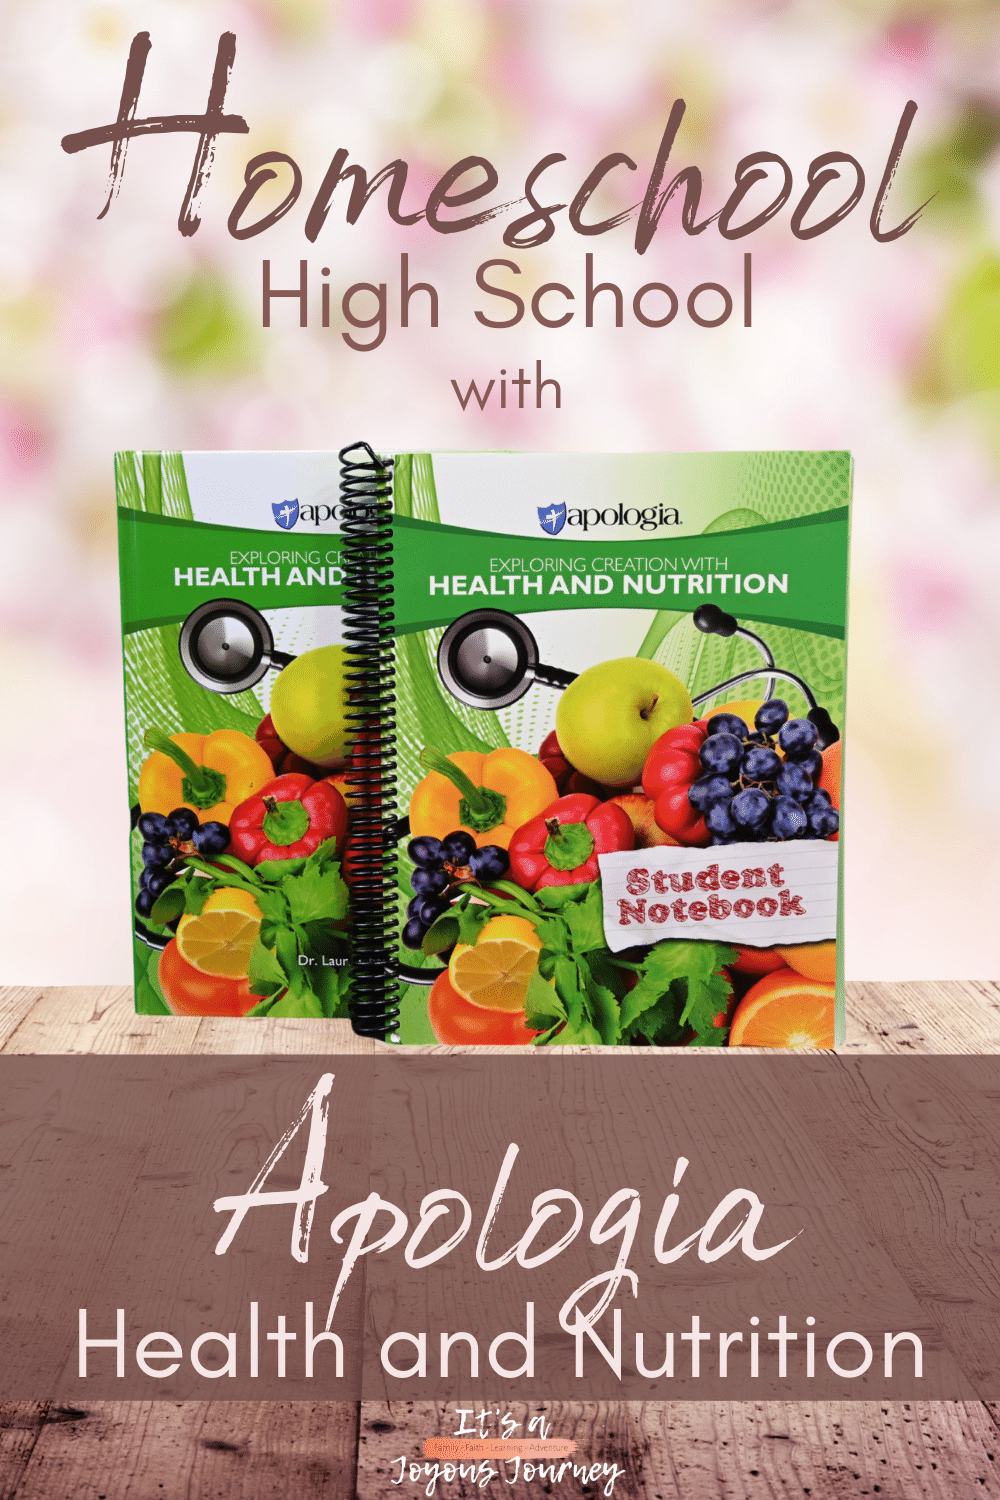 Apologia Health and Nutrition